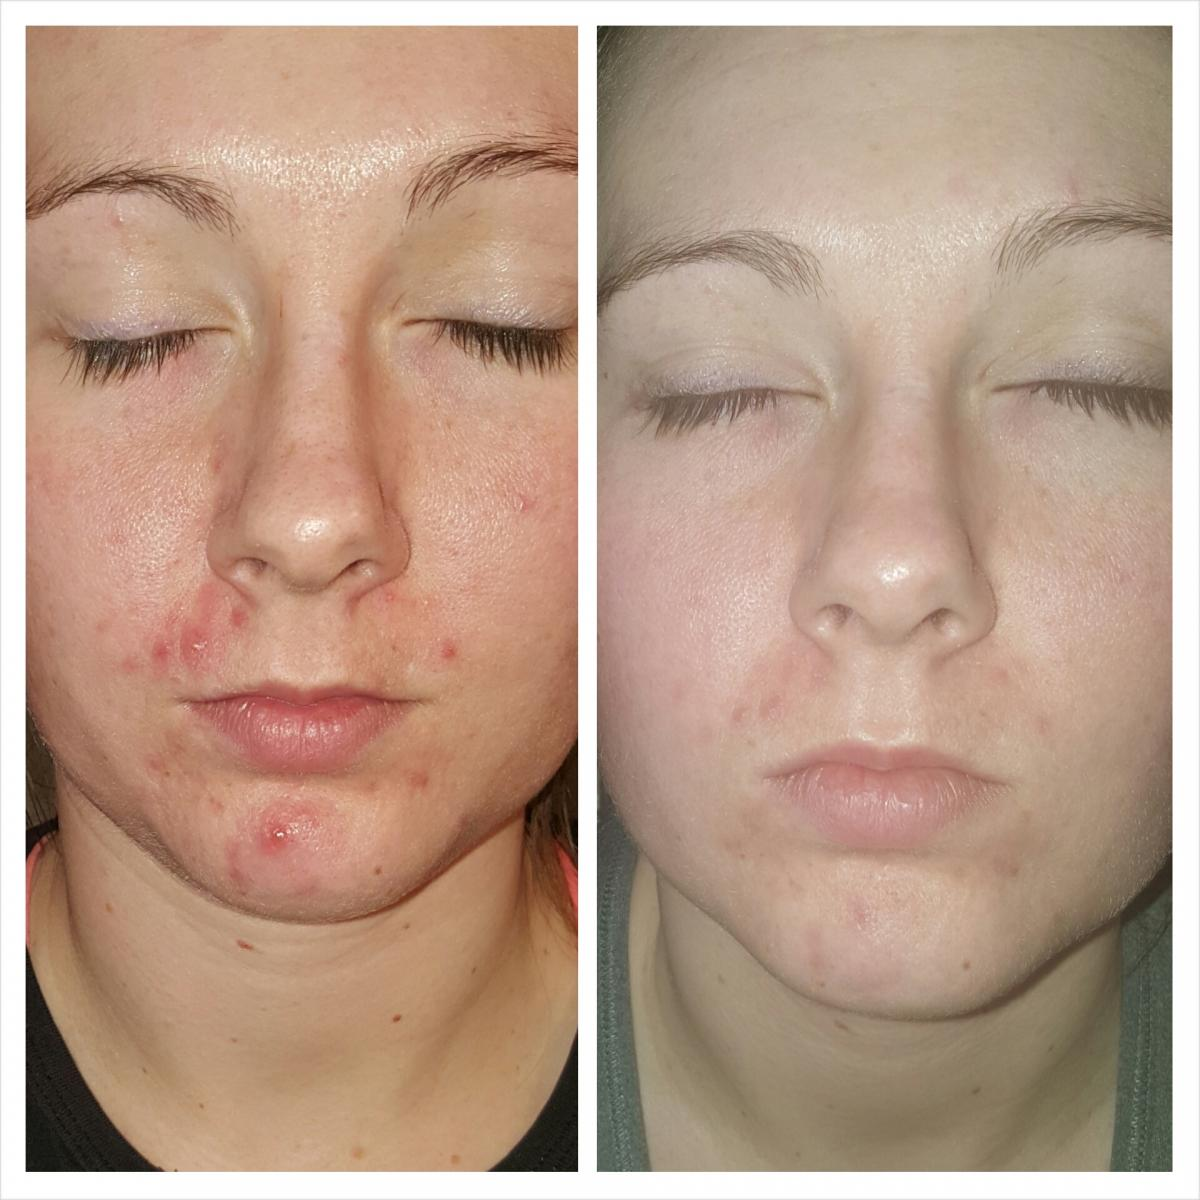 4 days of following acne.org regimen